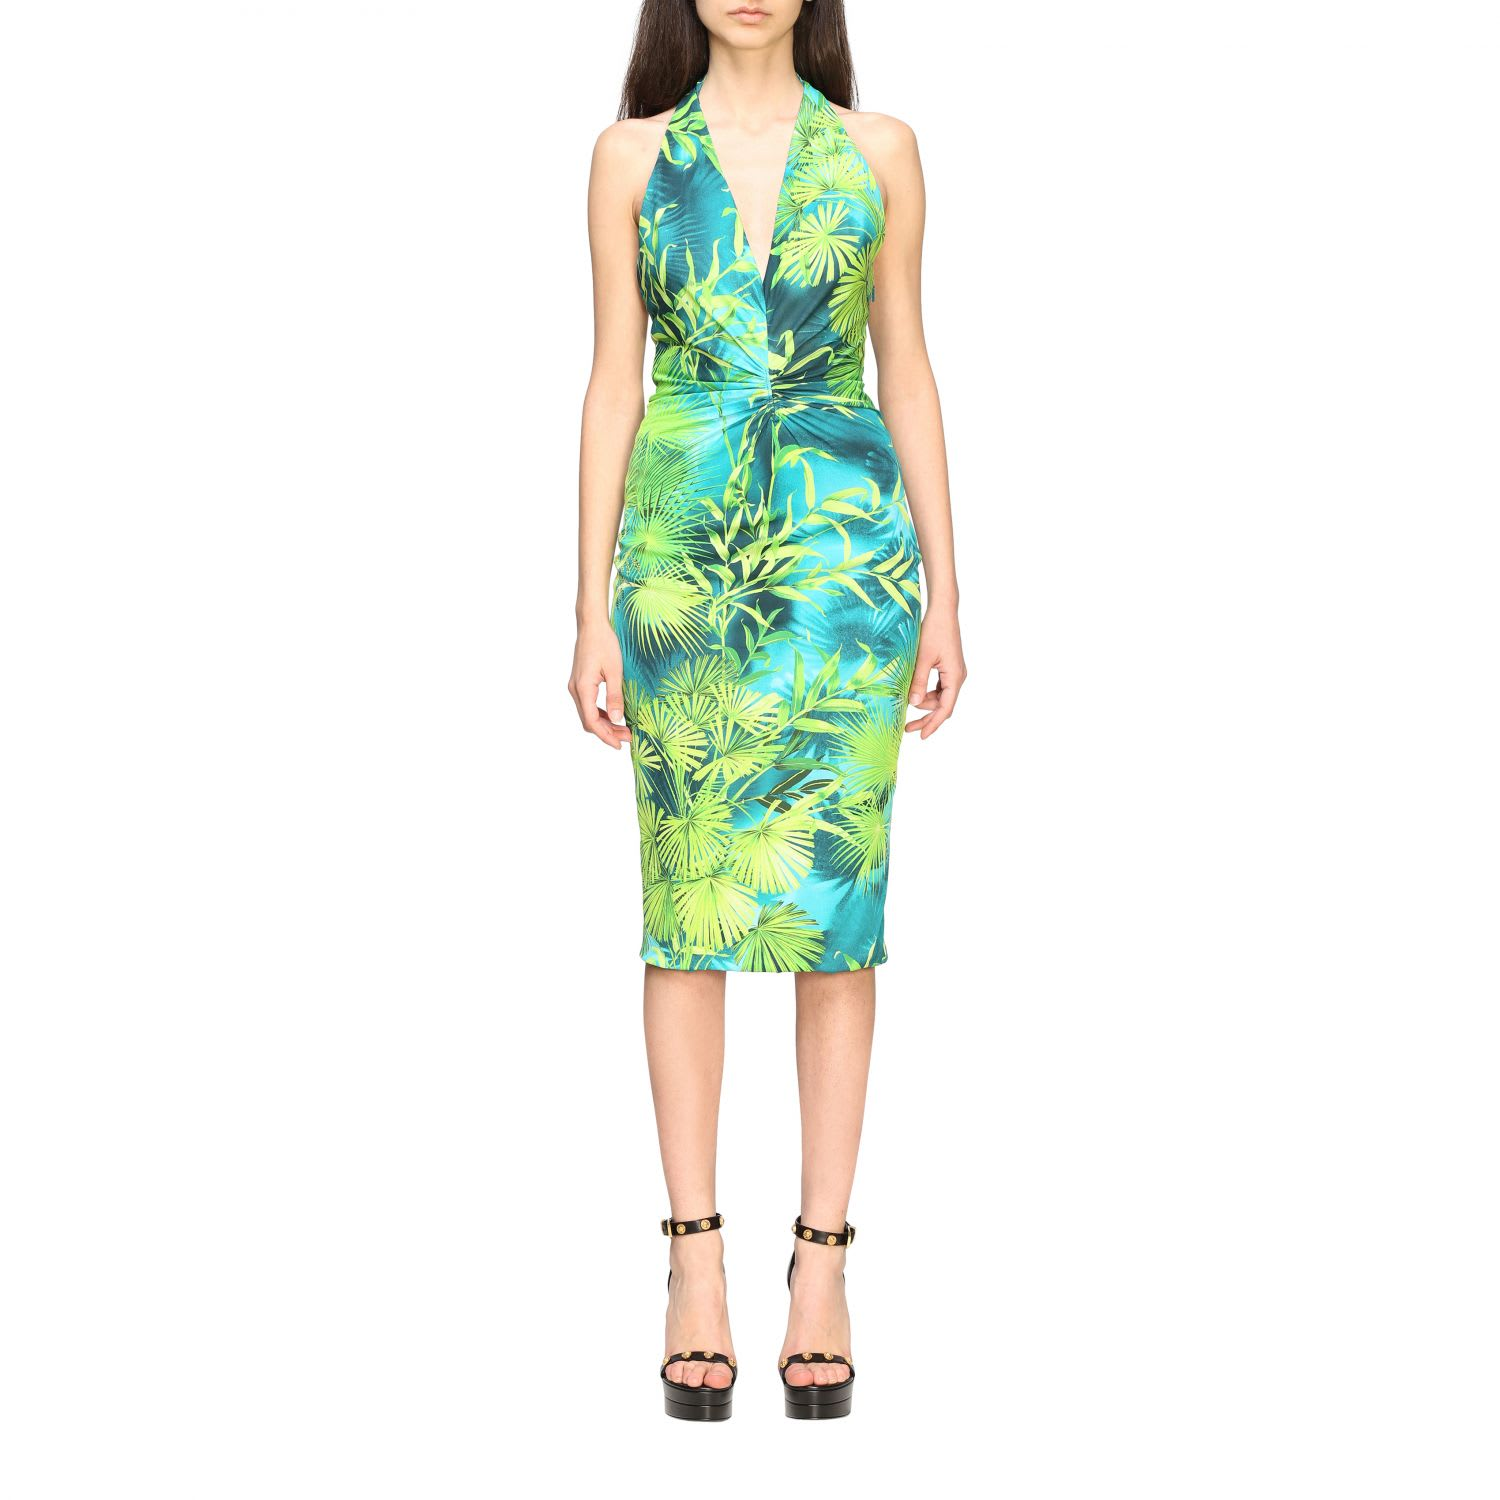 Buy Versace Dress Versace Dress With American Neckline In Jungle Print Jersey online, shop Versace with free shipping